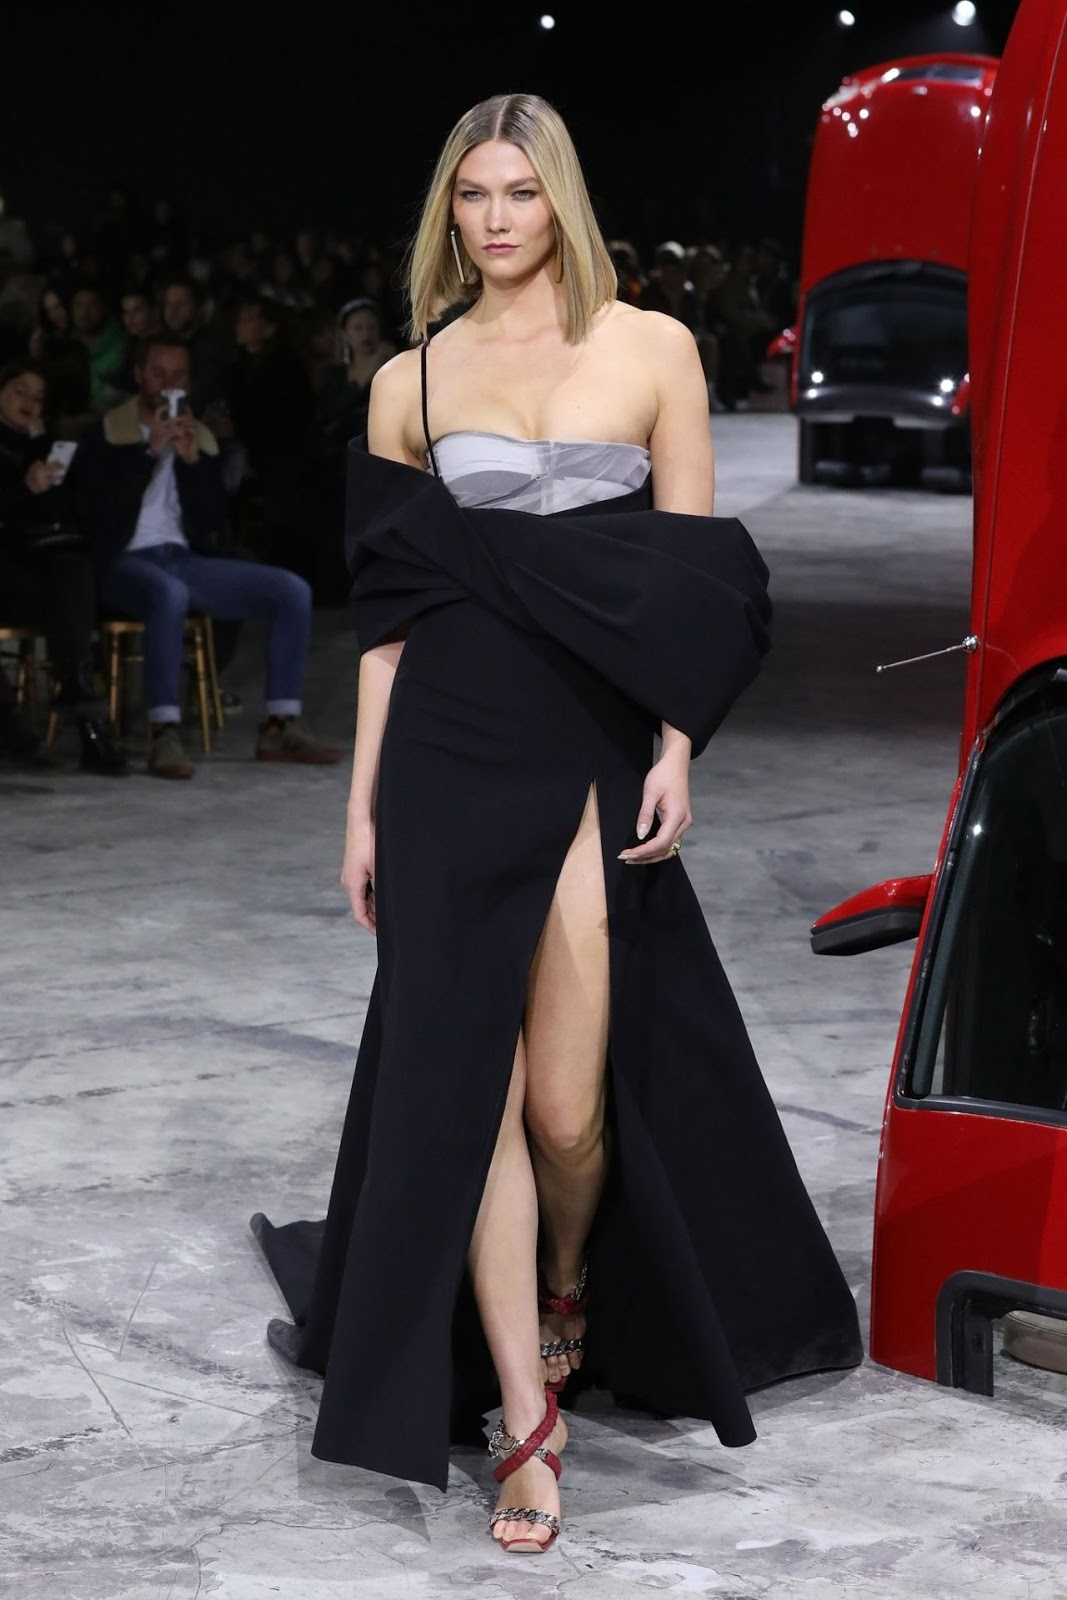 Karlie Kloss flashes her cleavage and toned legs in racy thigh-split corset gown as she walks the runway at Off White Paris Fashion Week show